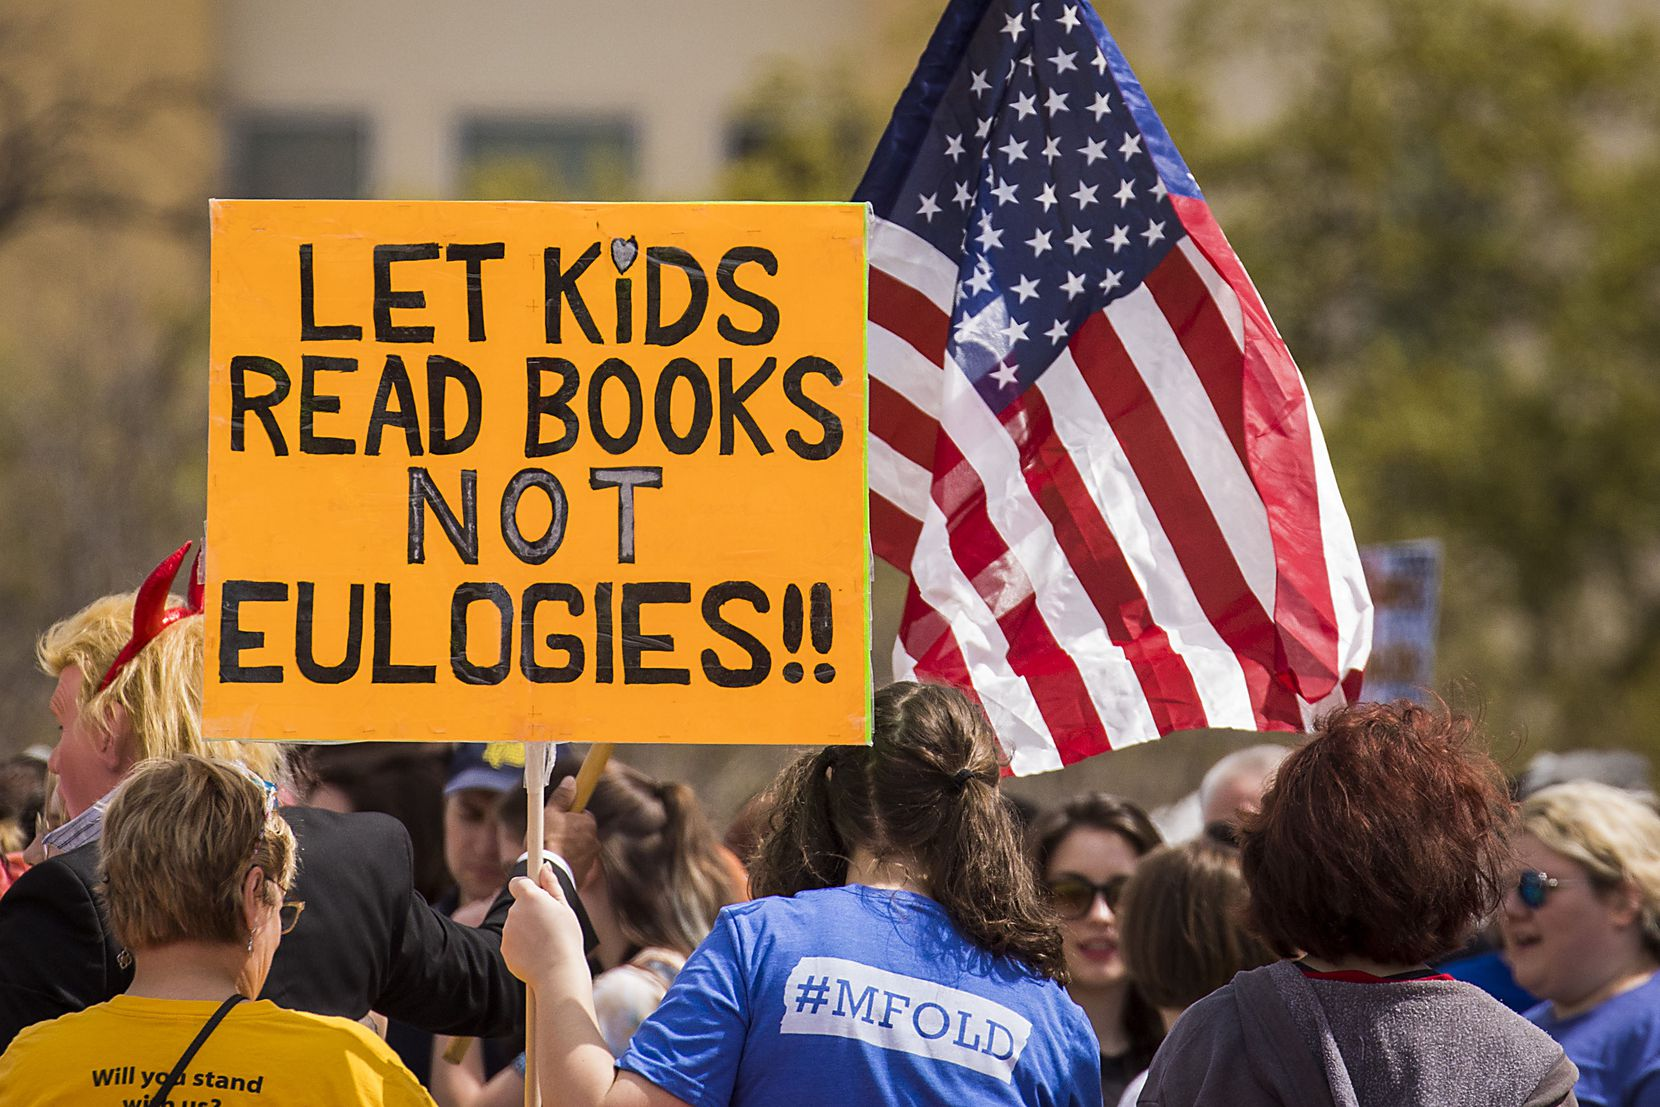 """A sign reads """"Let kids read books not eulogies!!"""" in reference to recent school shootings."""